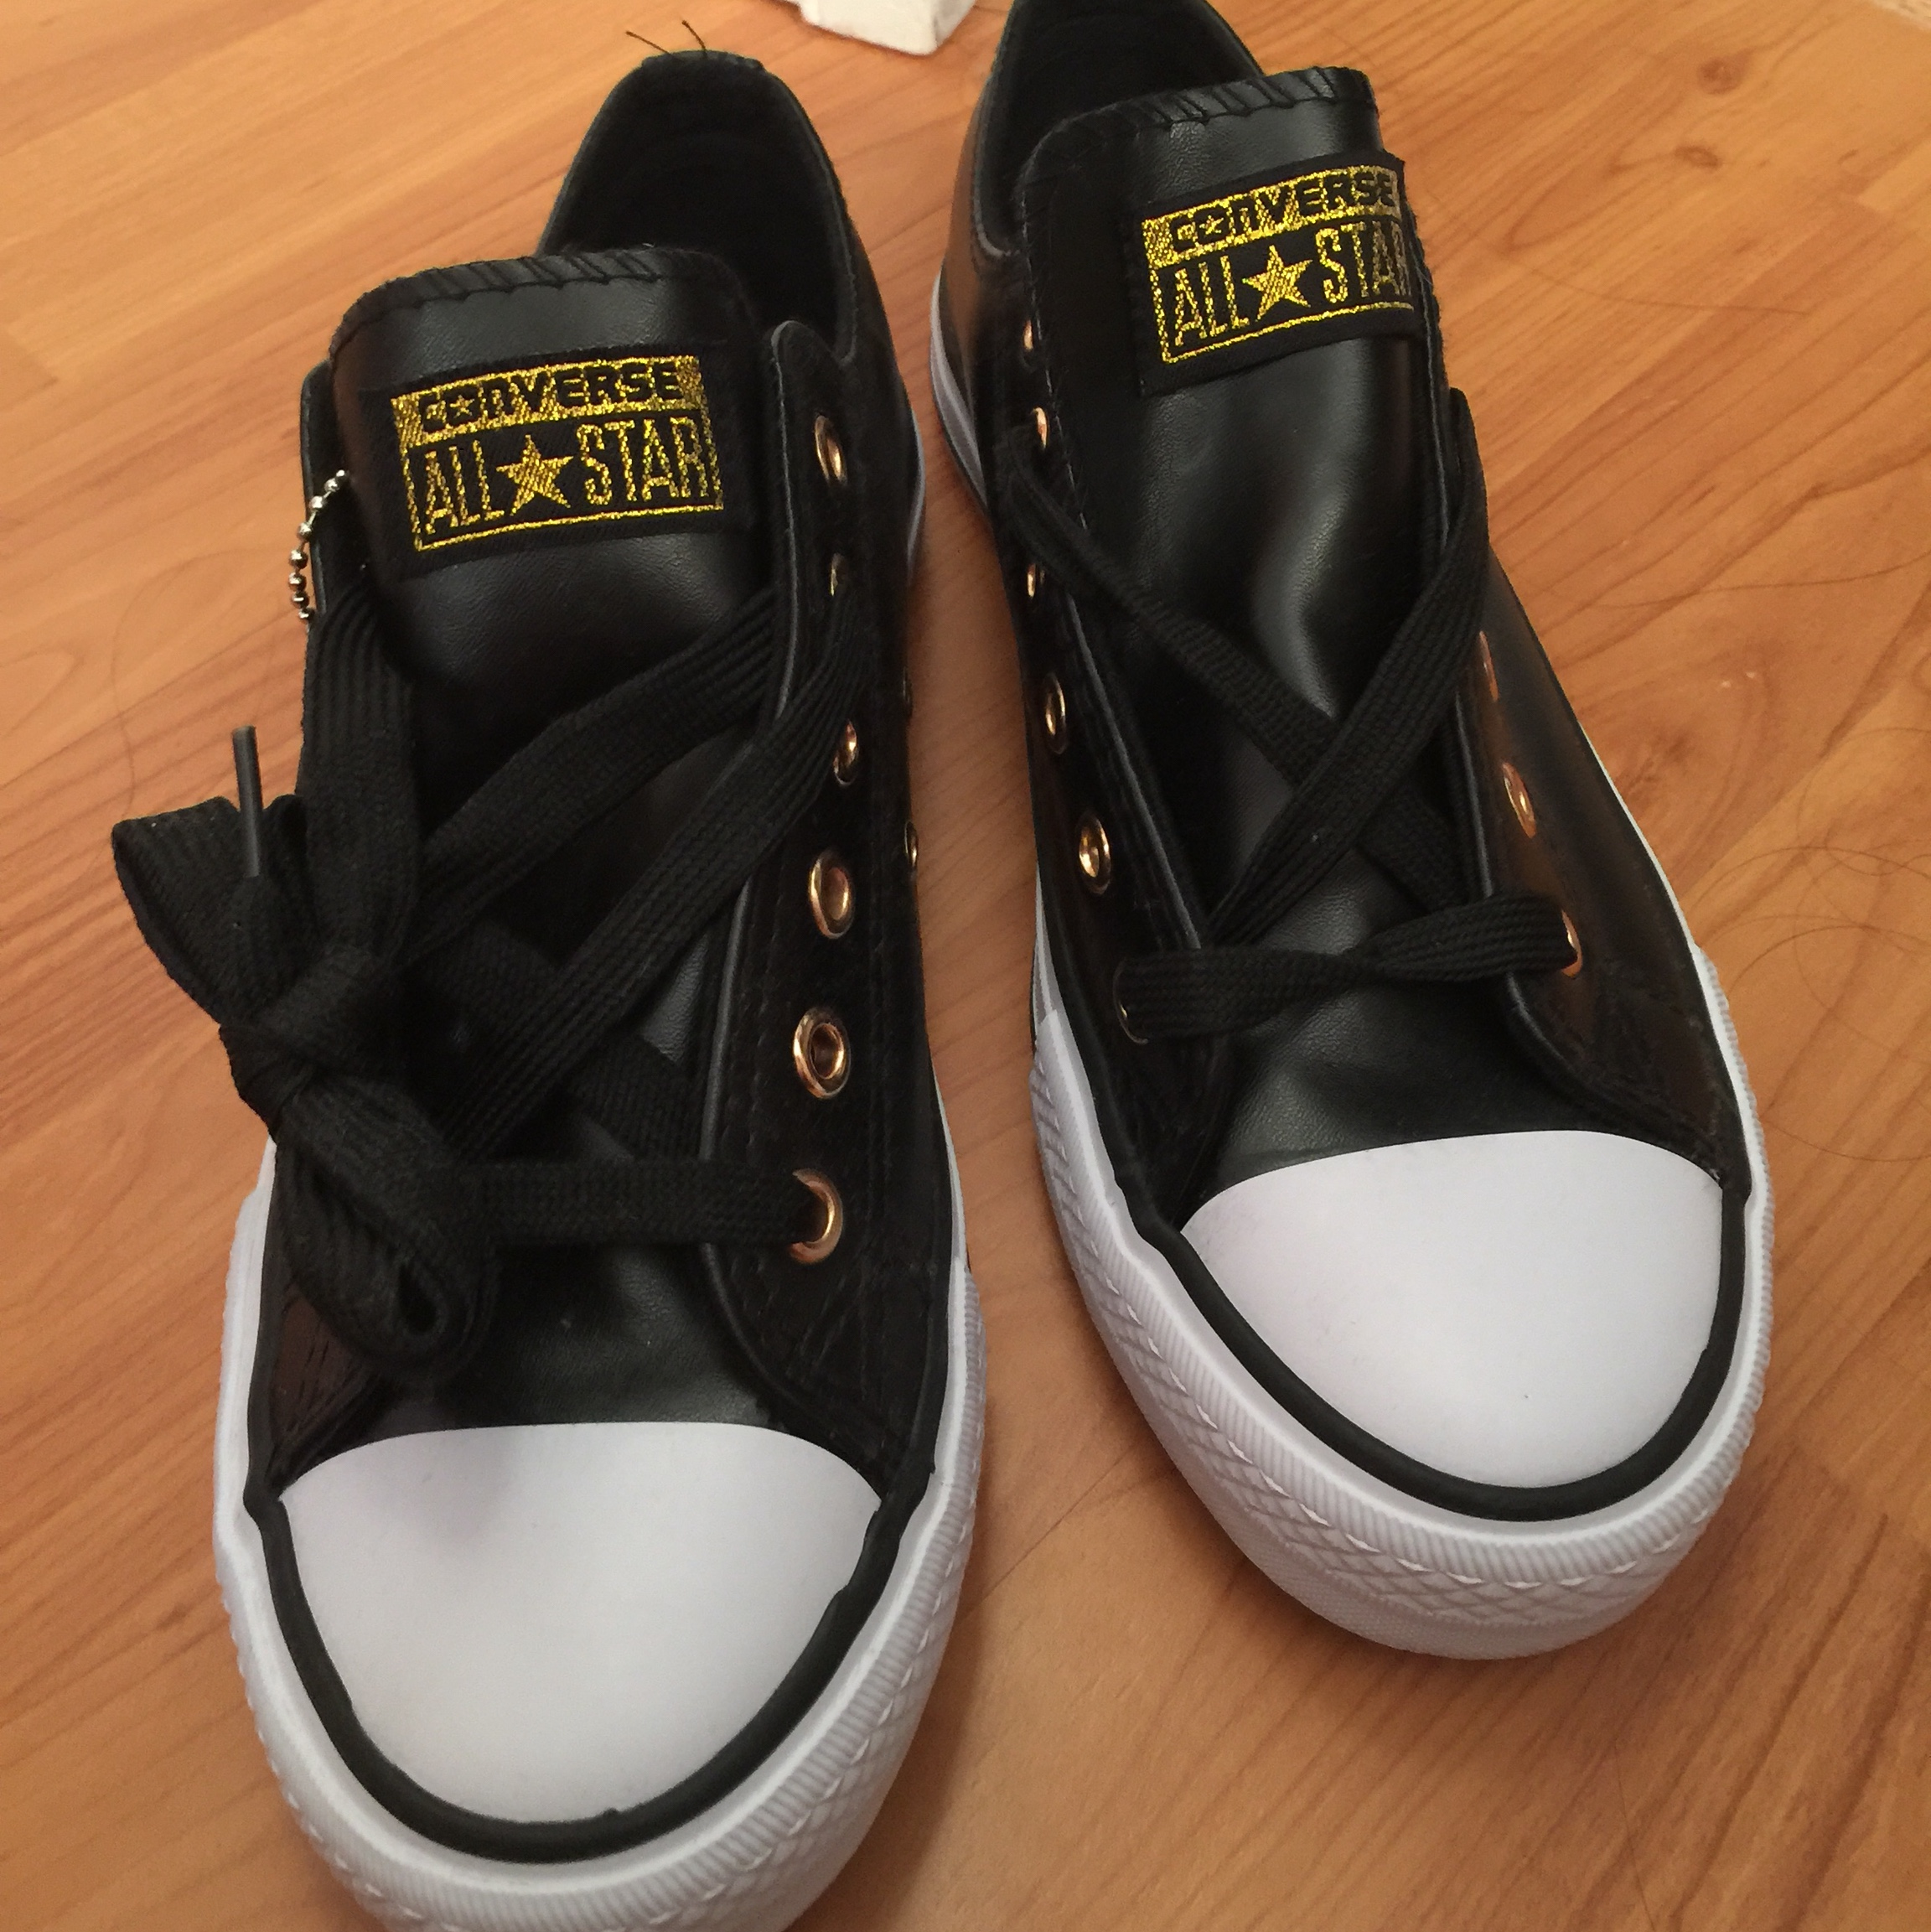 Leather Converse Shoes Size: 5.5 in Men